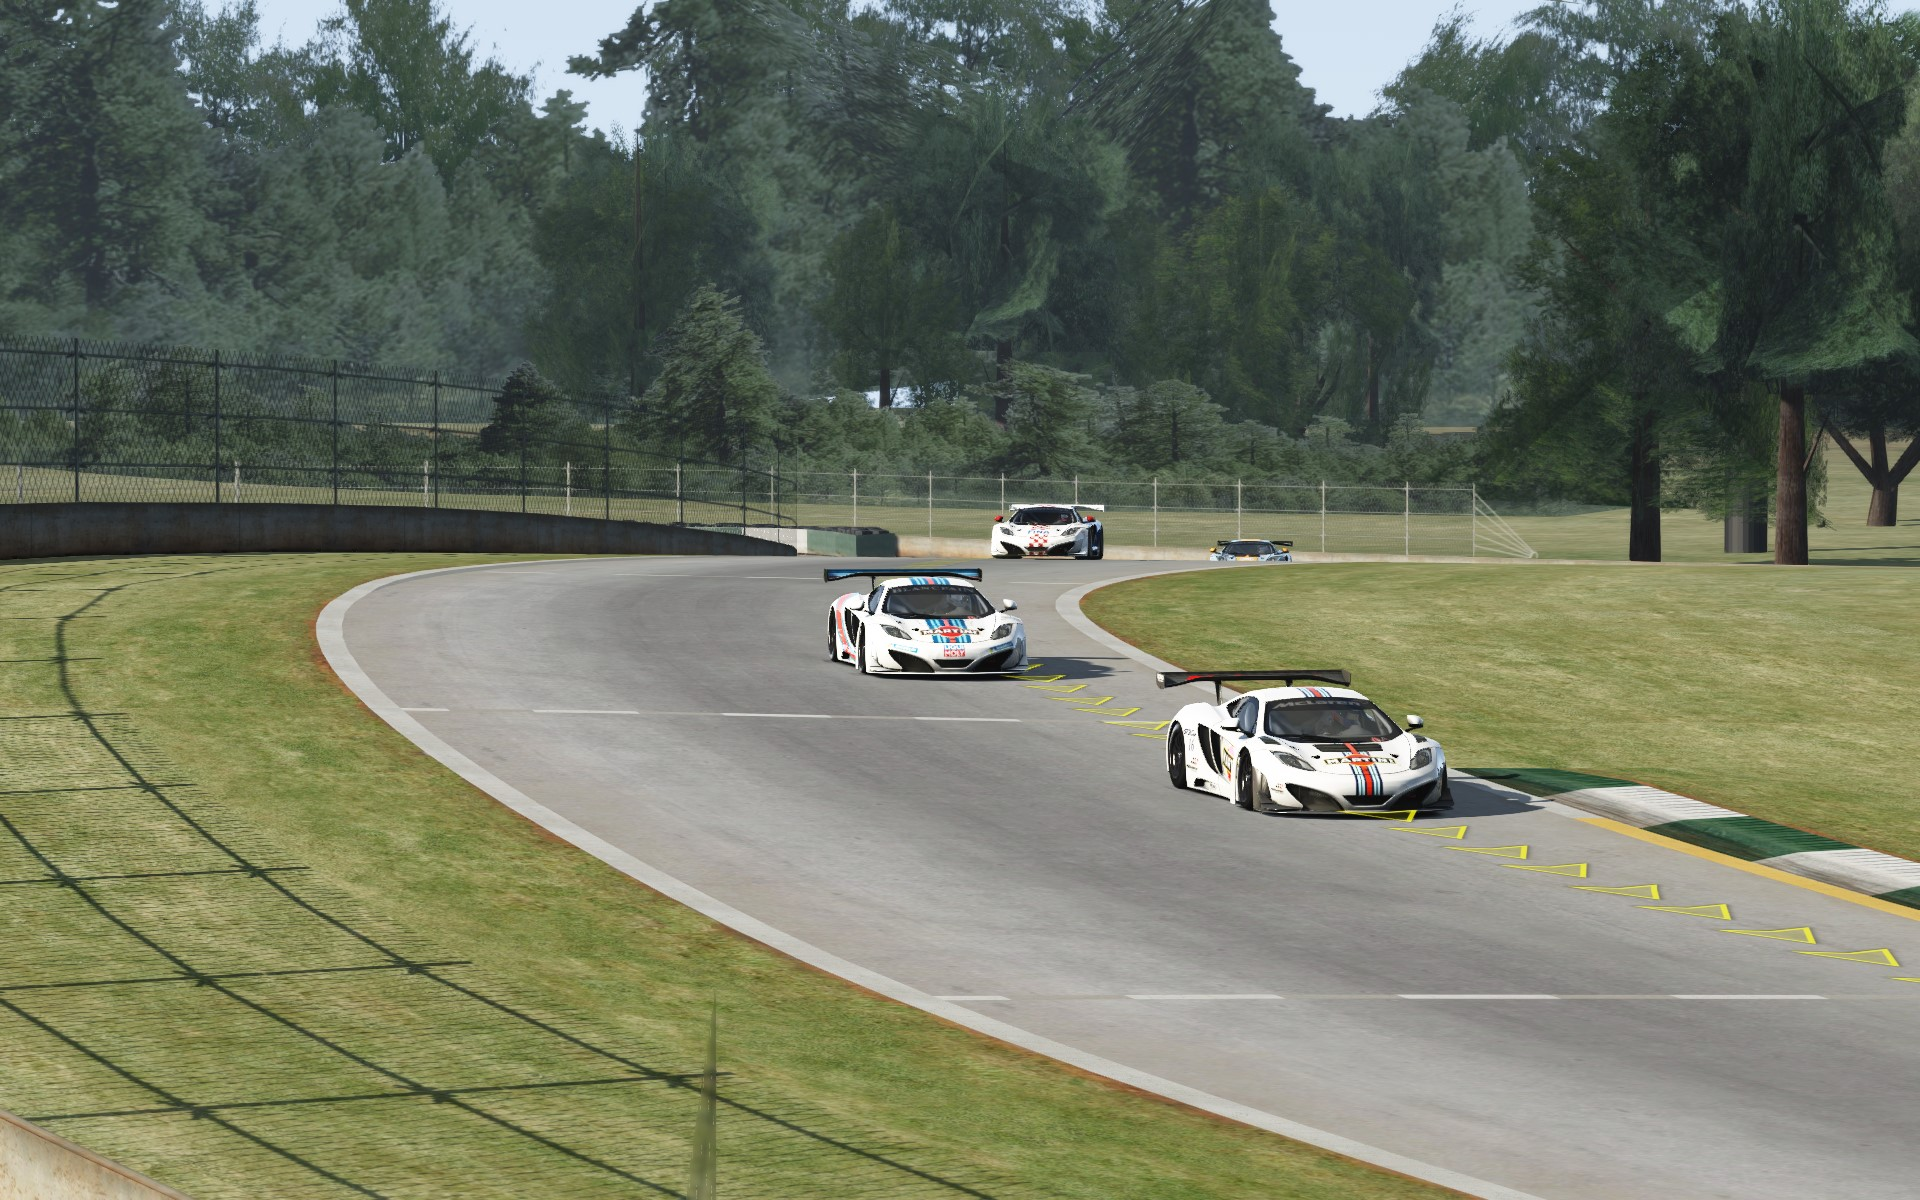 Screenshot_mclaren_mp412c_gt3_road atlanta_10-8-115-13-58-24.jpg